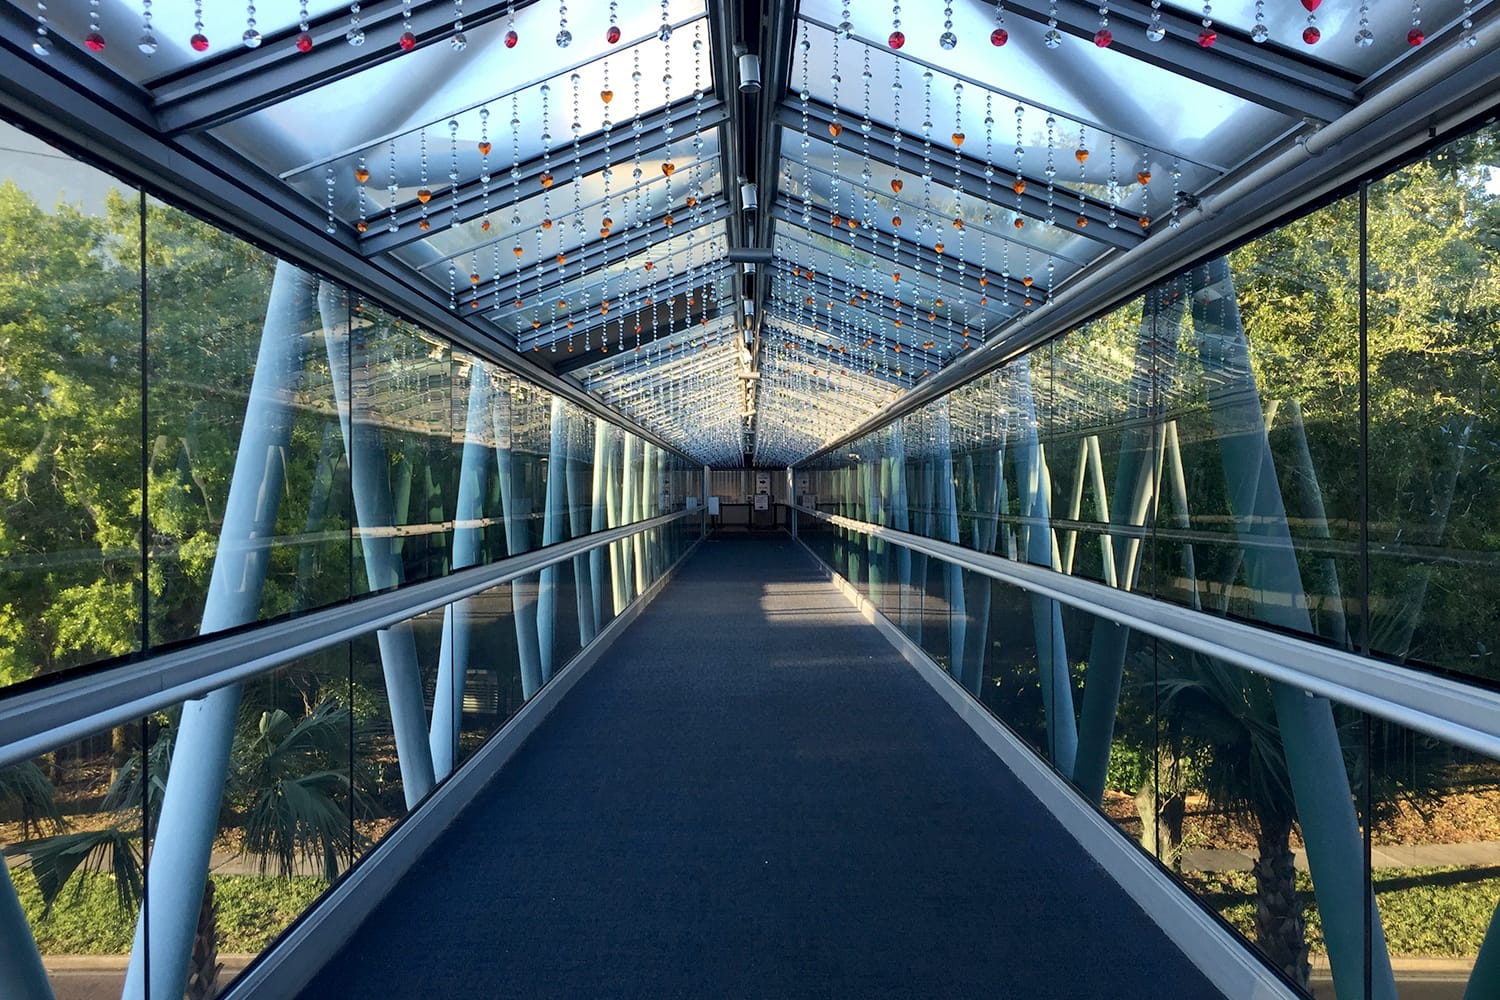 The Orlando Science Center's glass pedestrian bridge high above Princeton Street is adorned with a rainbow of heart shaped crystals hanging inside